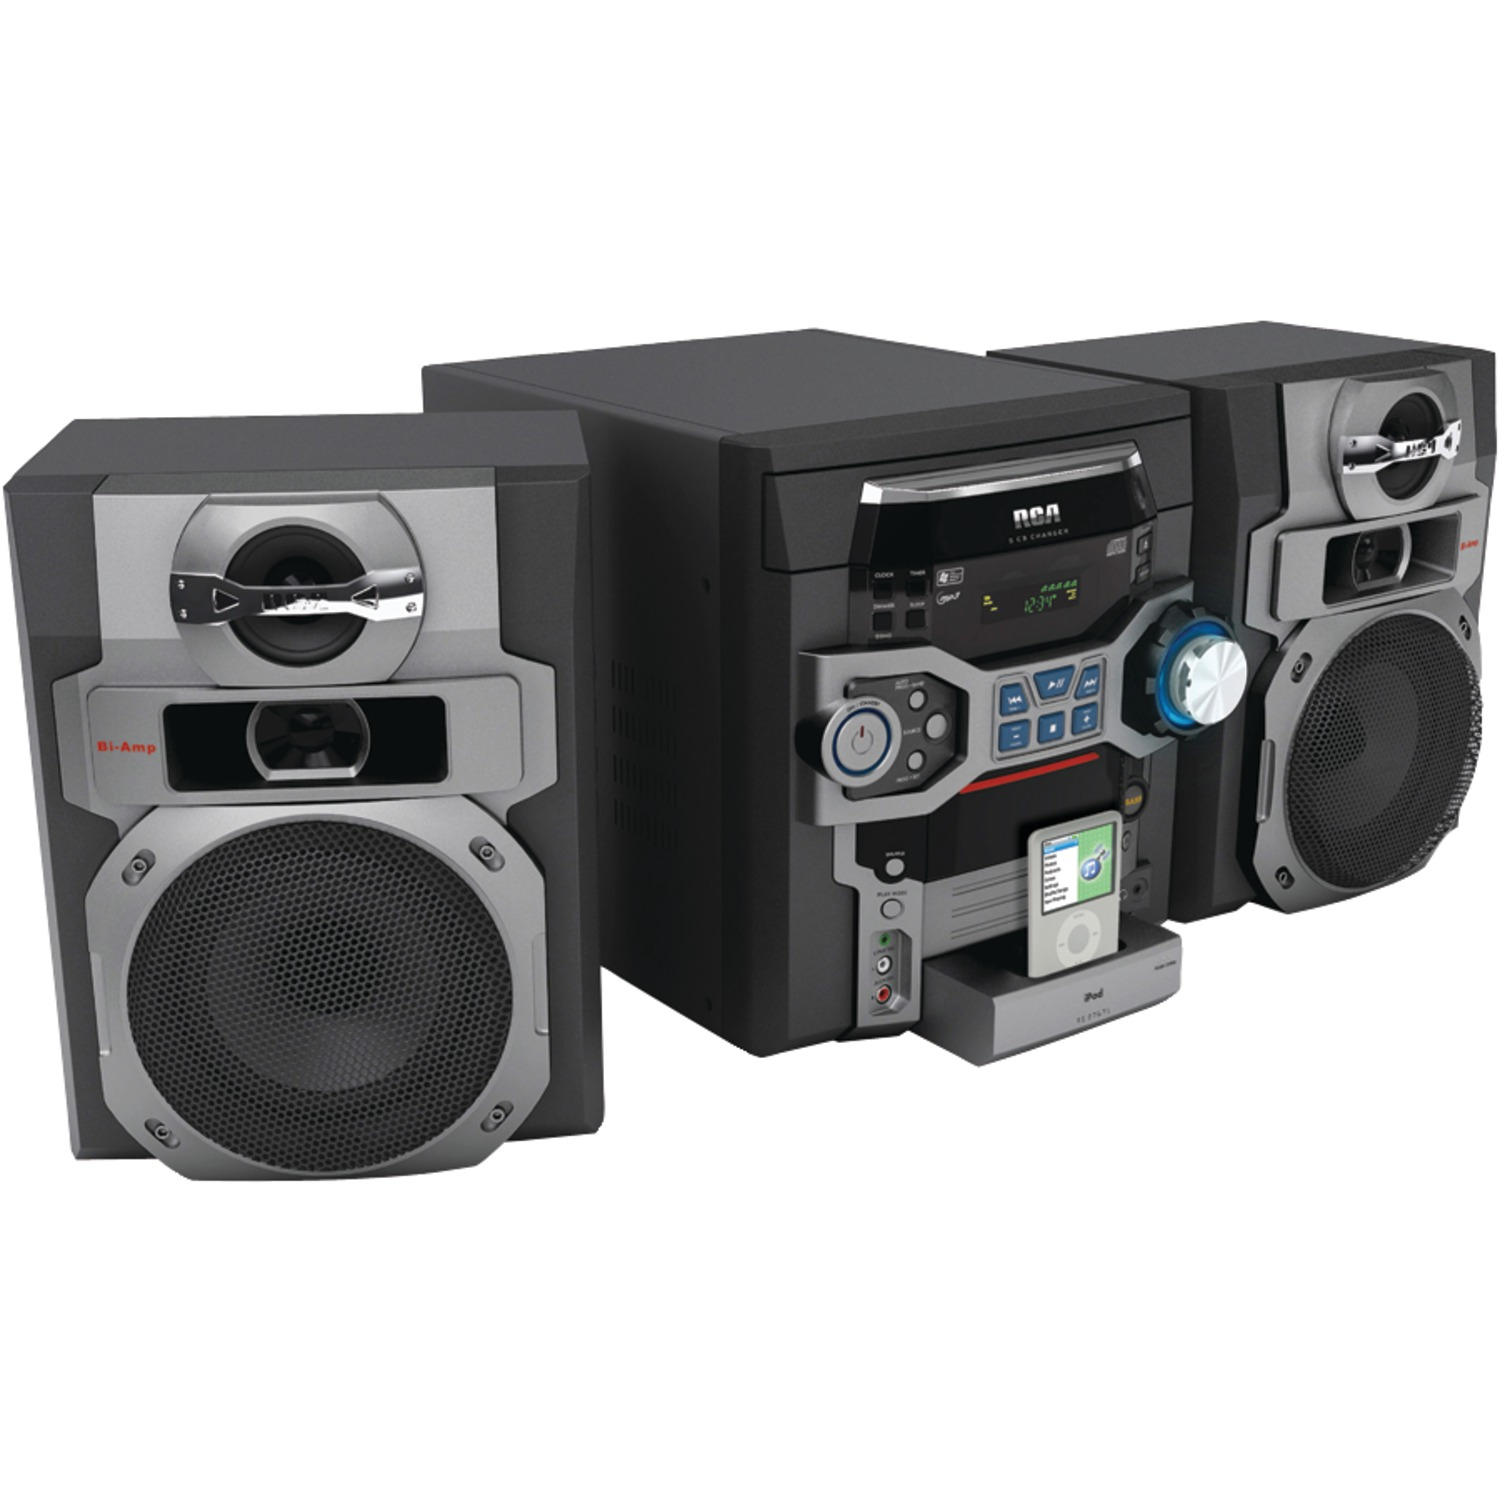 Rca Rs2767if 300 Watt 5 Disc Cd Audio System With Ipod R